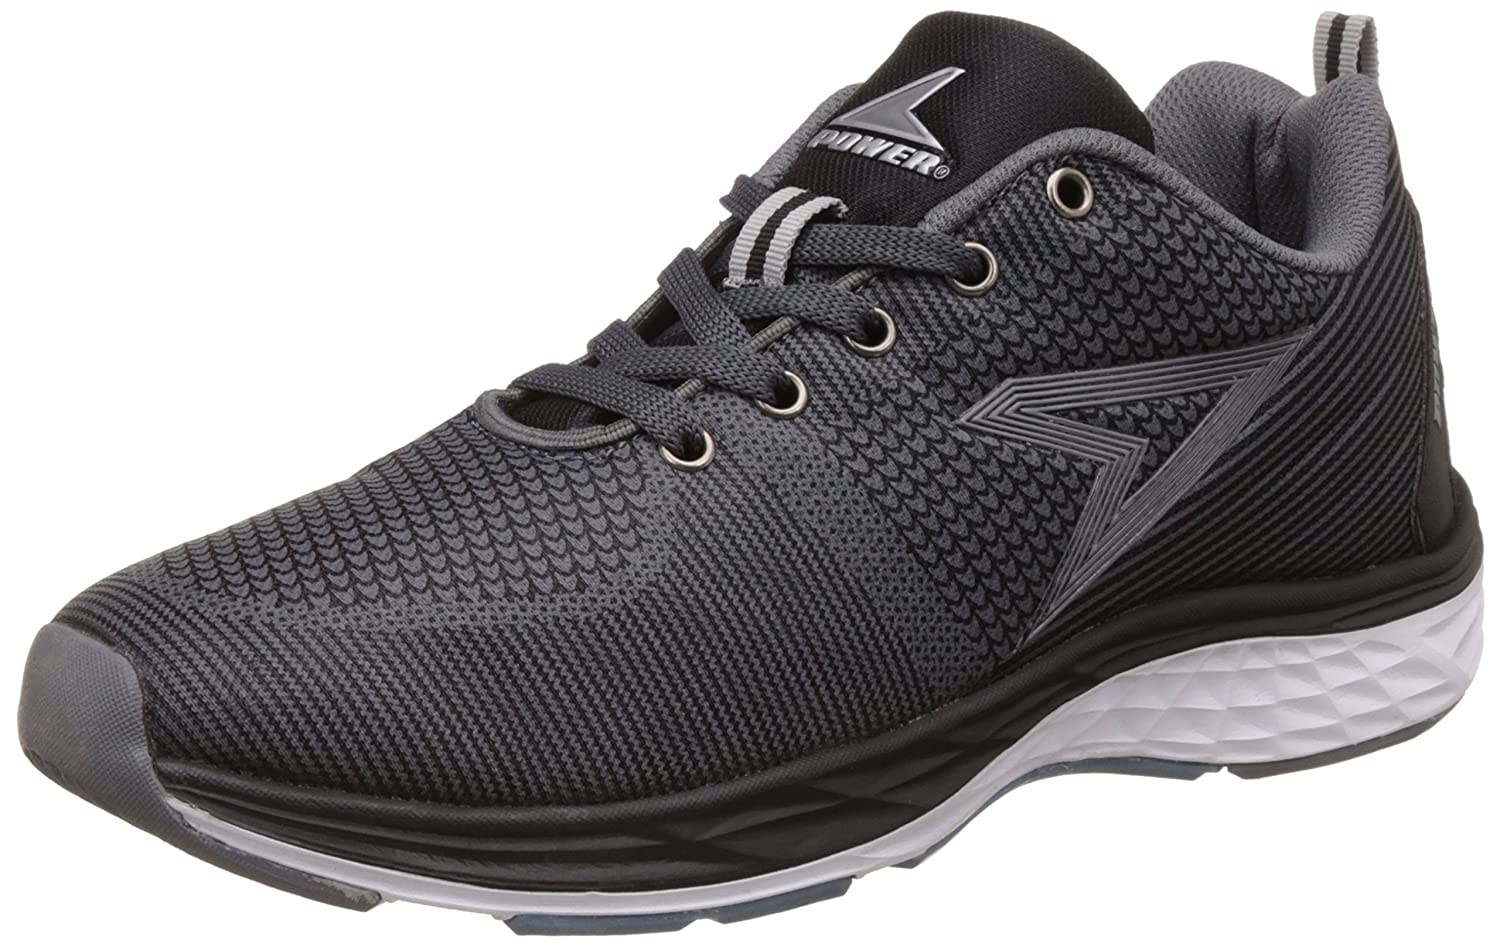 Power Men's running shoes under 1000 Rupees for men